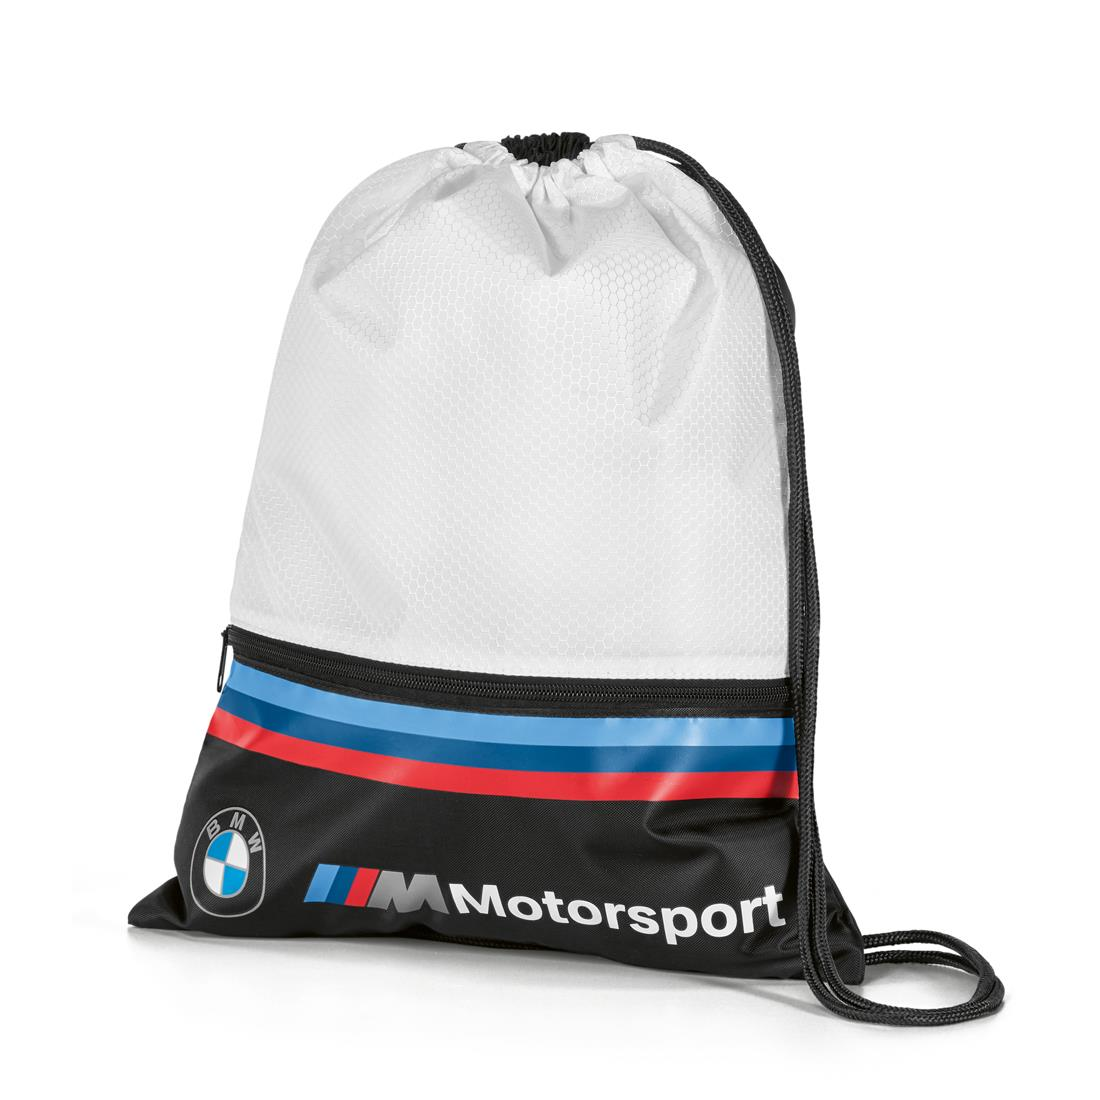 BMW Motorsport Gym Bag